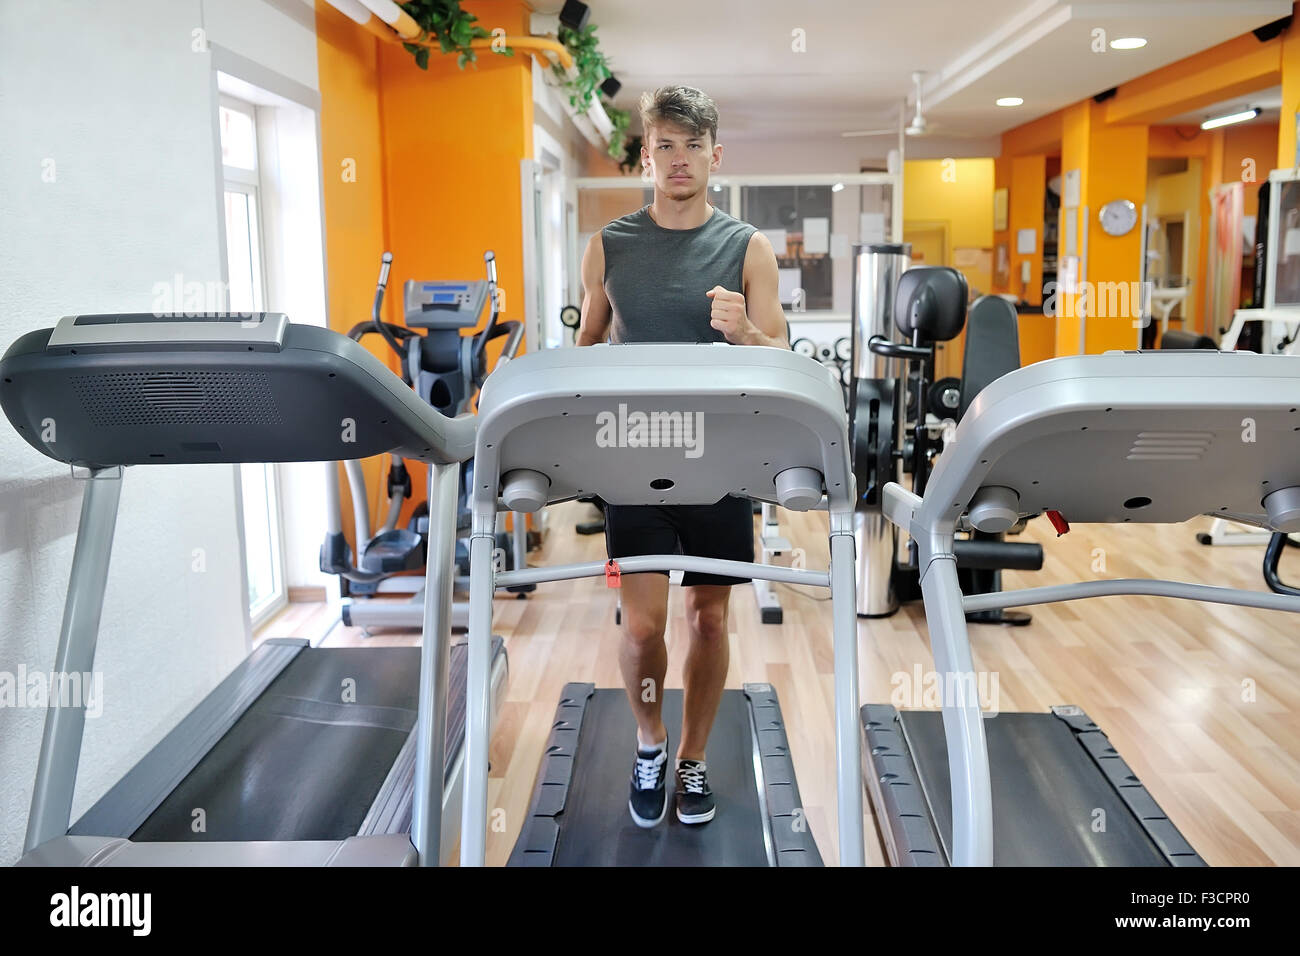 Young Handsome Athlete Running On Tapis Roulant In The Gym